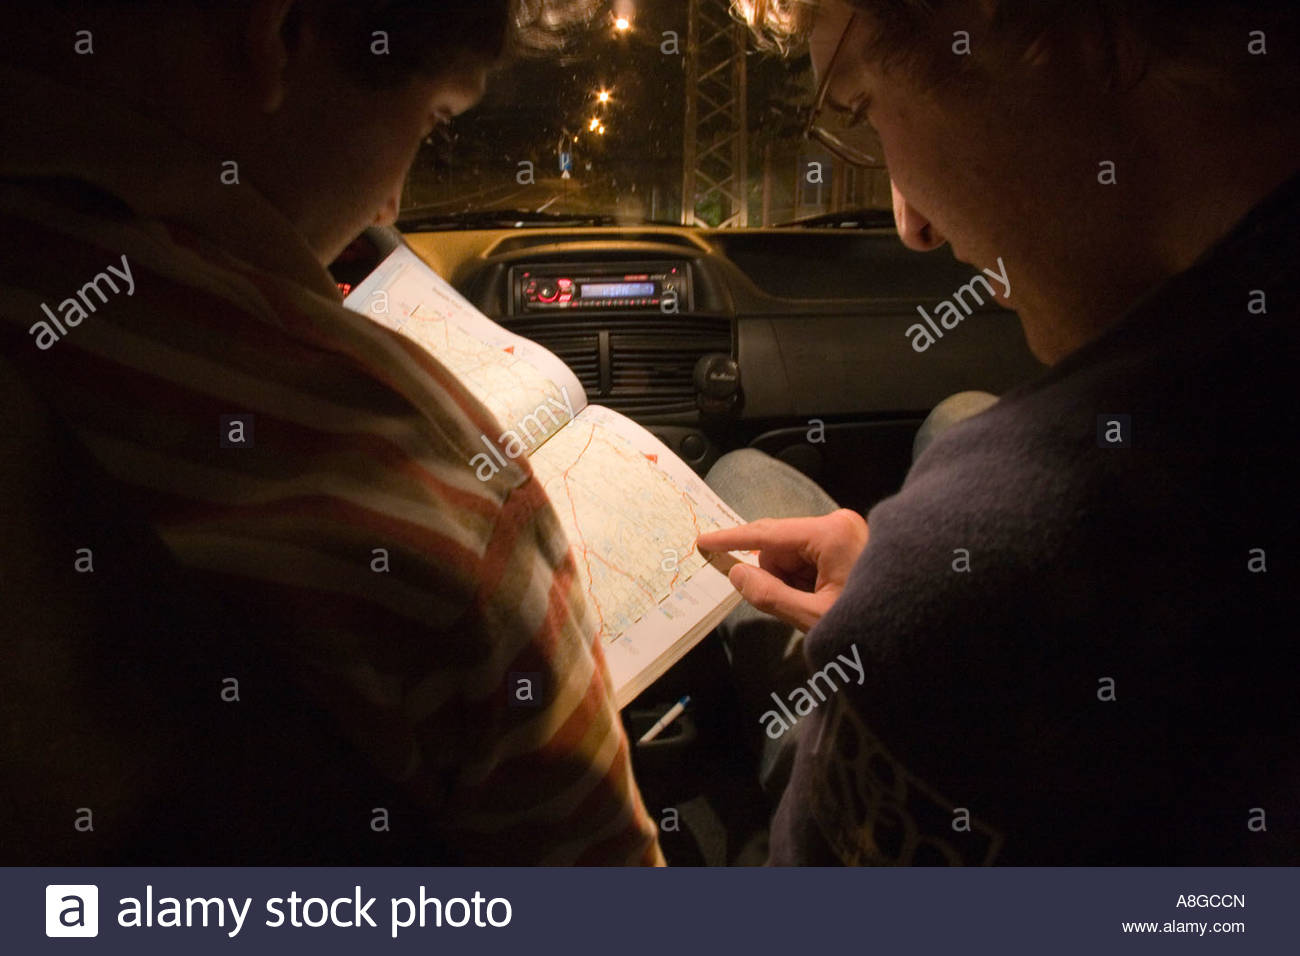 Lost tourists in a car during the night, checking their road atlas, in Europe. - Stock Image